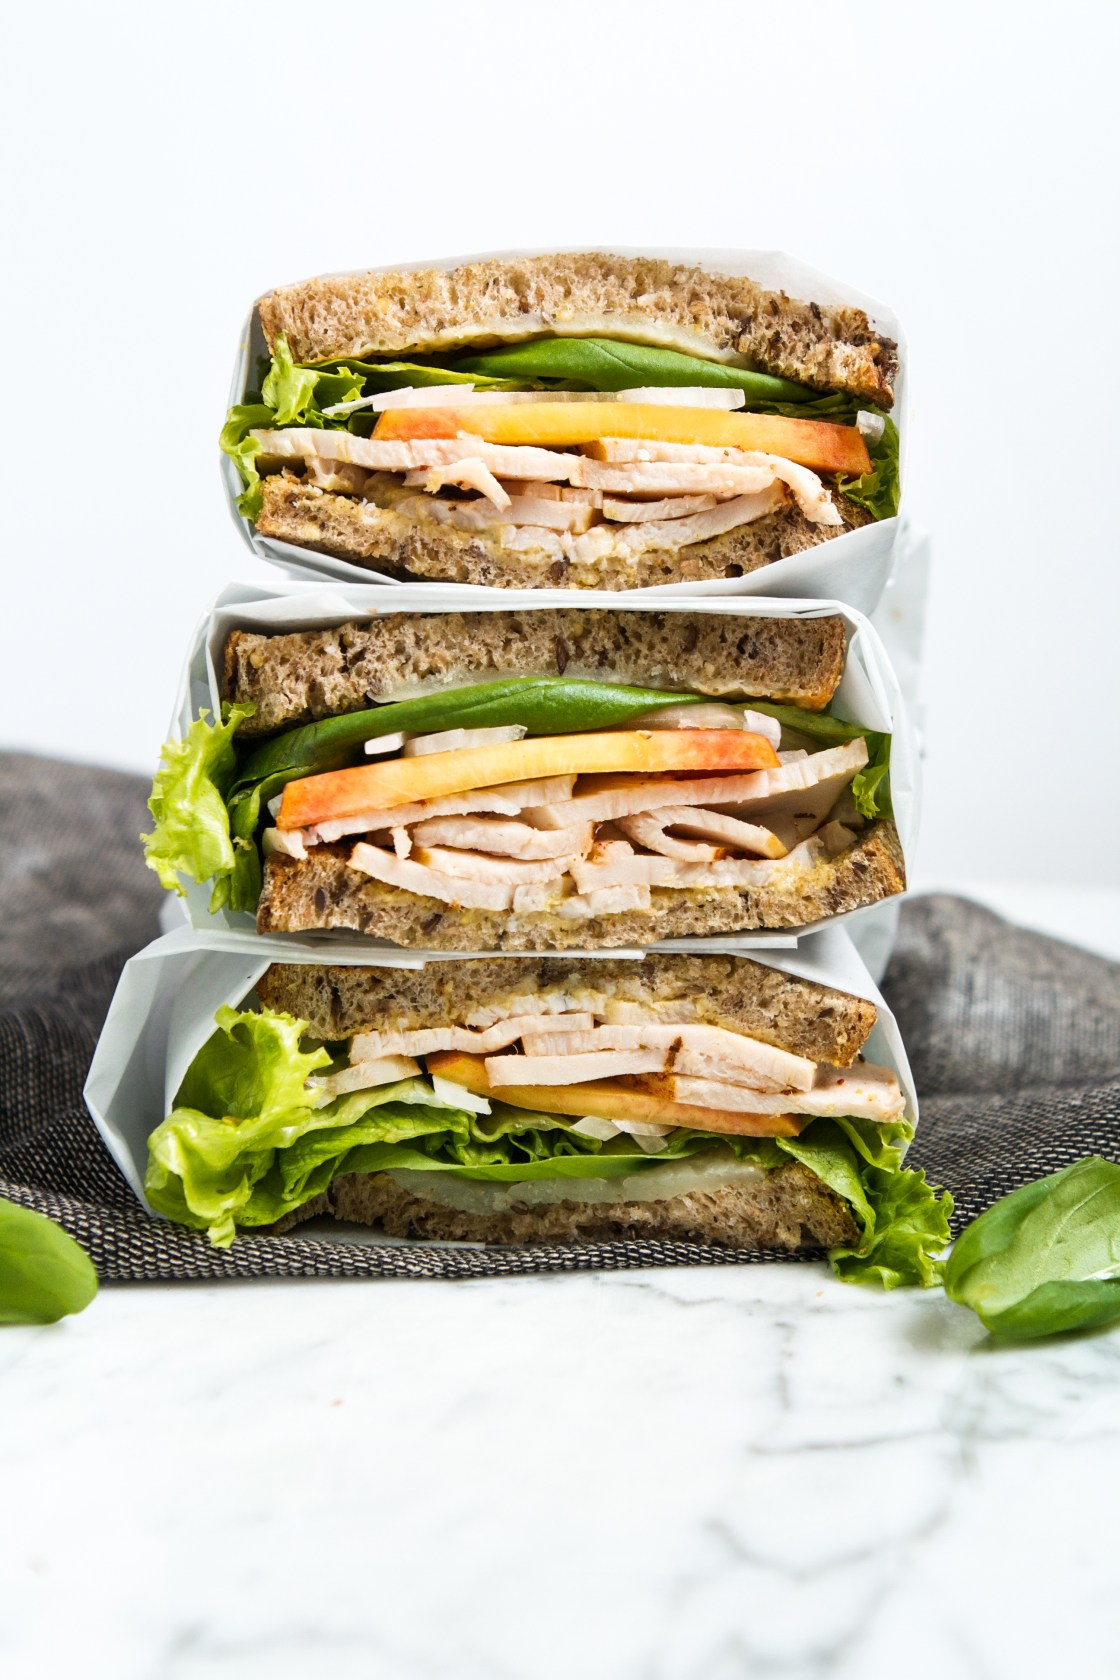 Turkey, Peach & Basil Sandwich | Zestful Kitchen